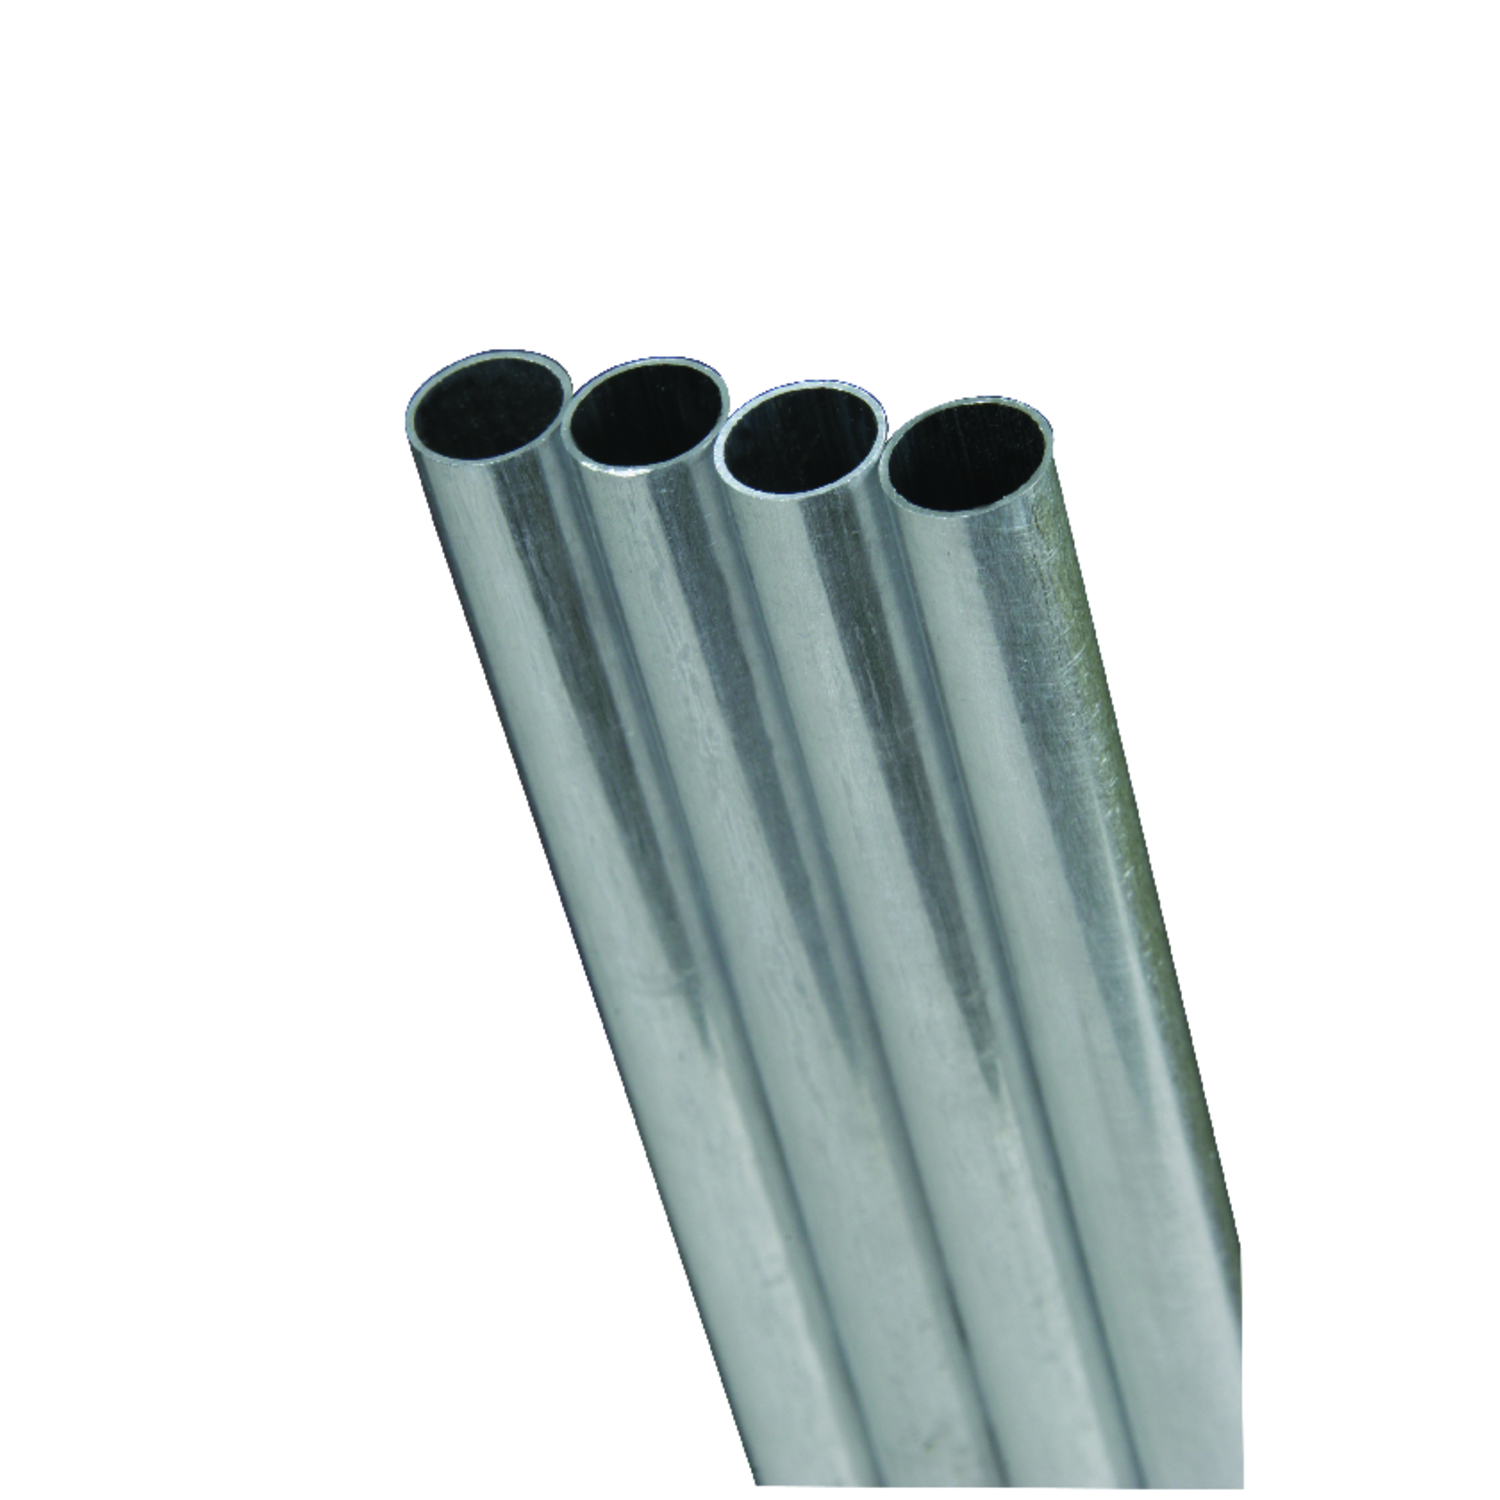 K&S Round Tube 3/8 in. x 12 in. Stainless steel Carded - Ace Hardware